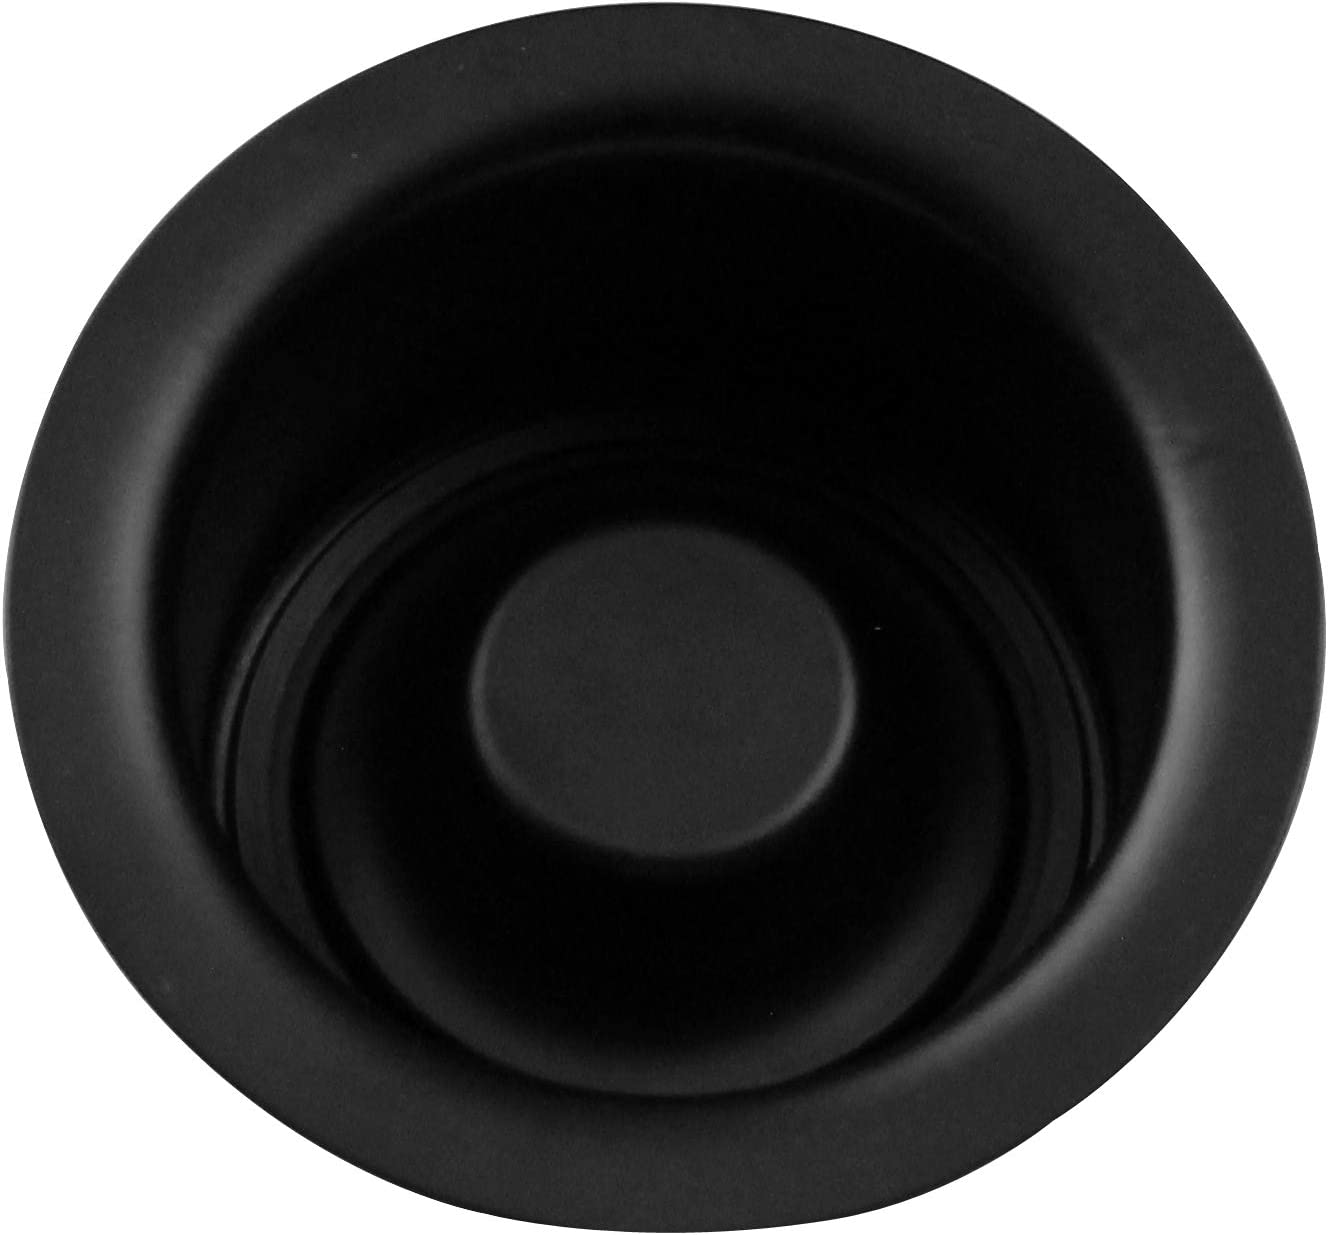 Westbrass R2082-62 InSinkErator Style Extra-Deep Disposal Flange and Stopper, Matte Black